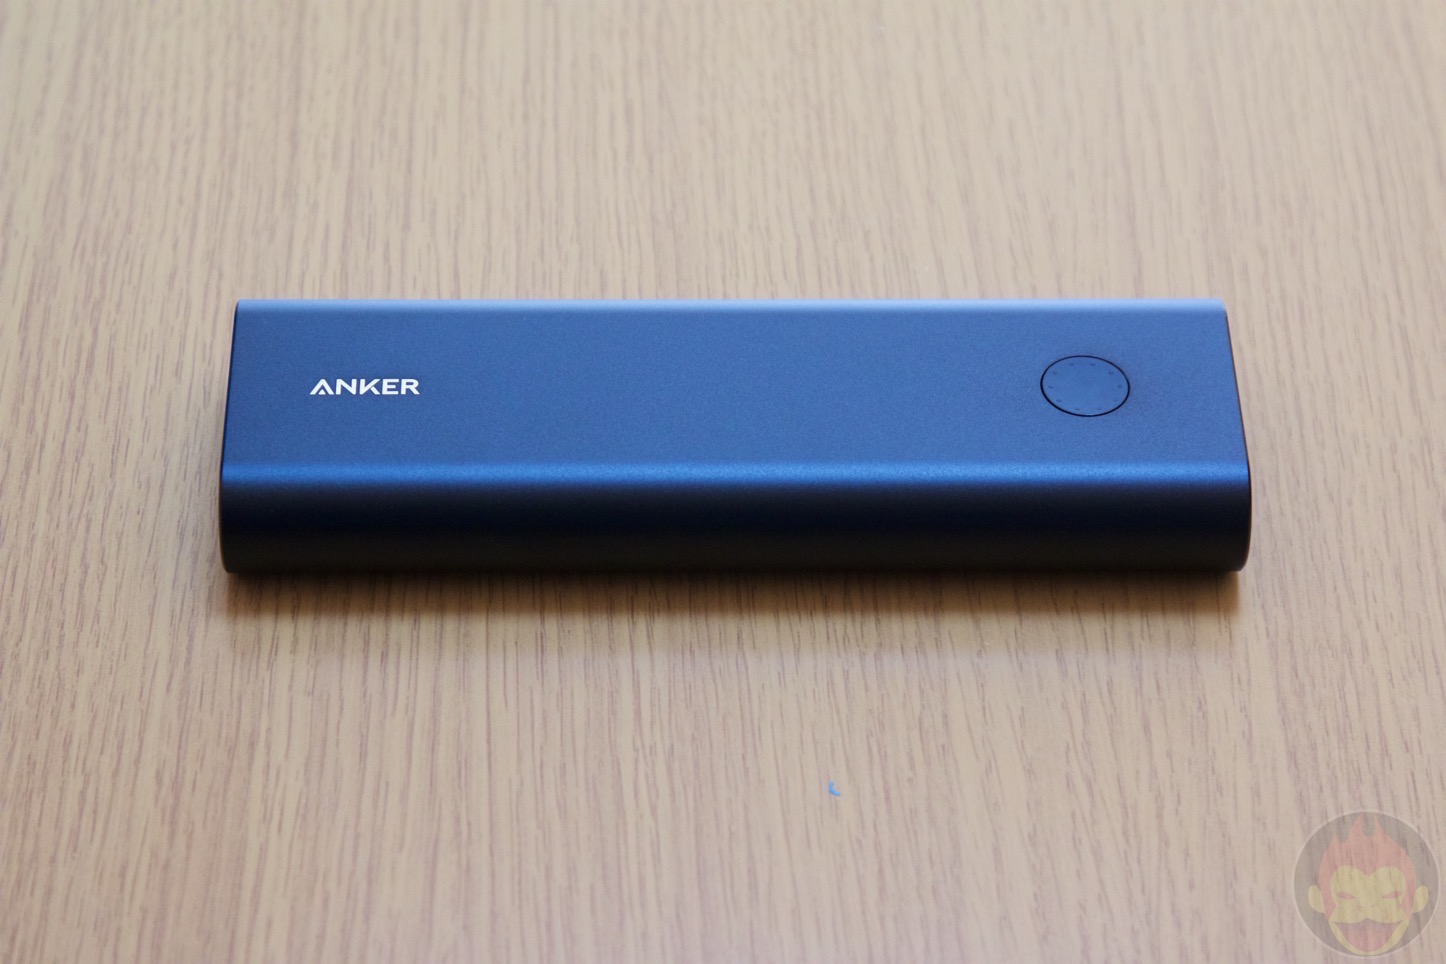 Anker-PowerCorePlus-20100-02.jpg